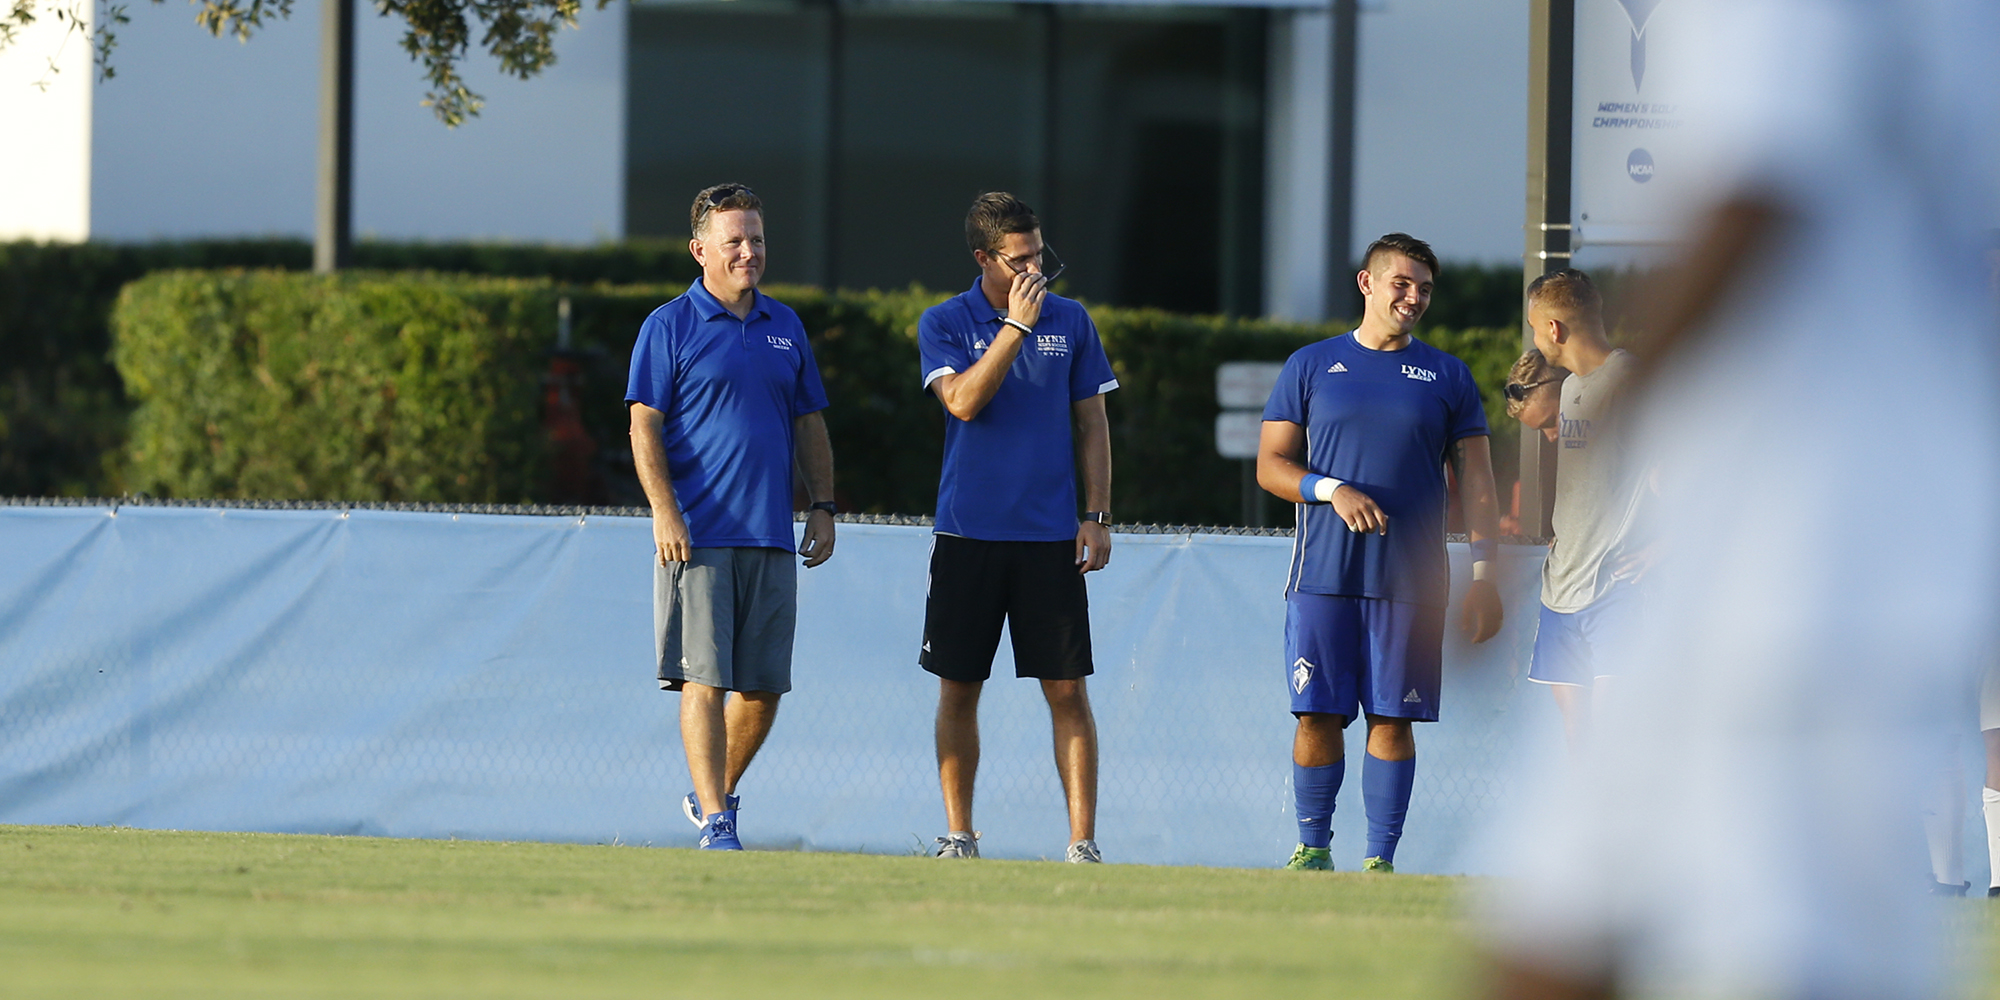 SEASON PREVIEW: 2017 #LynnMSoccer